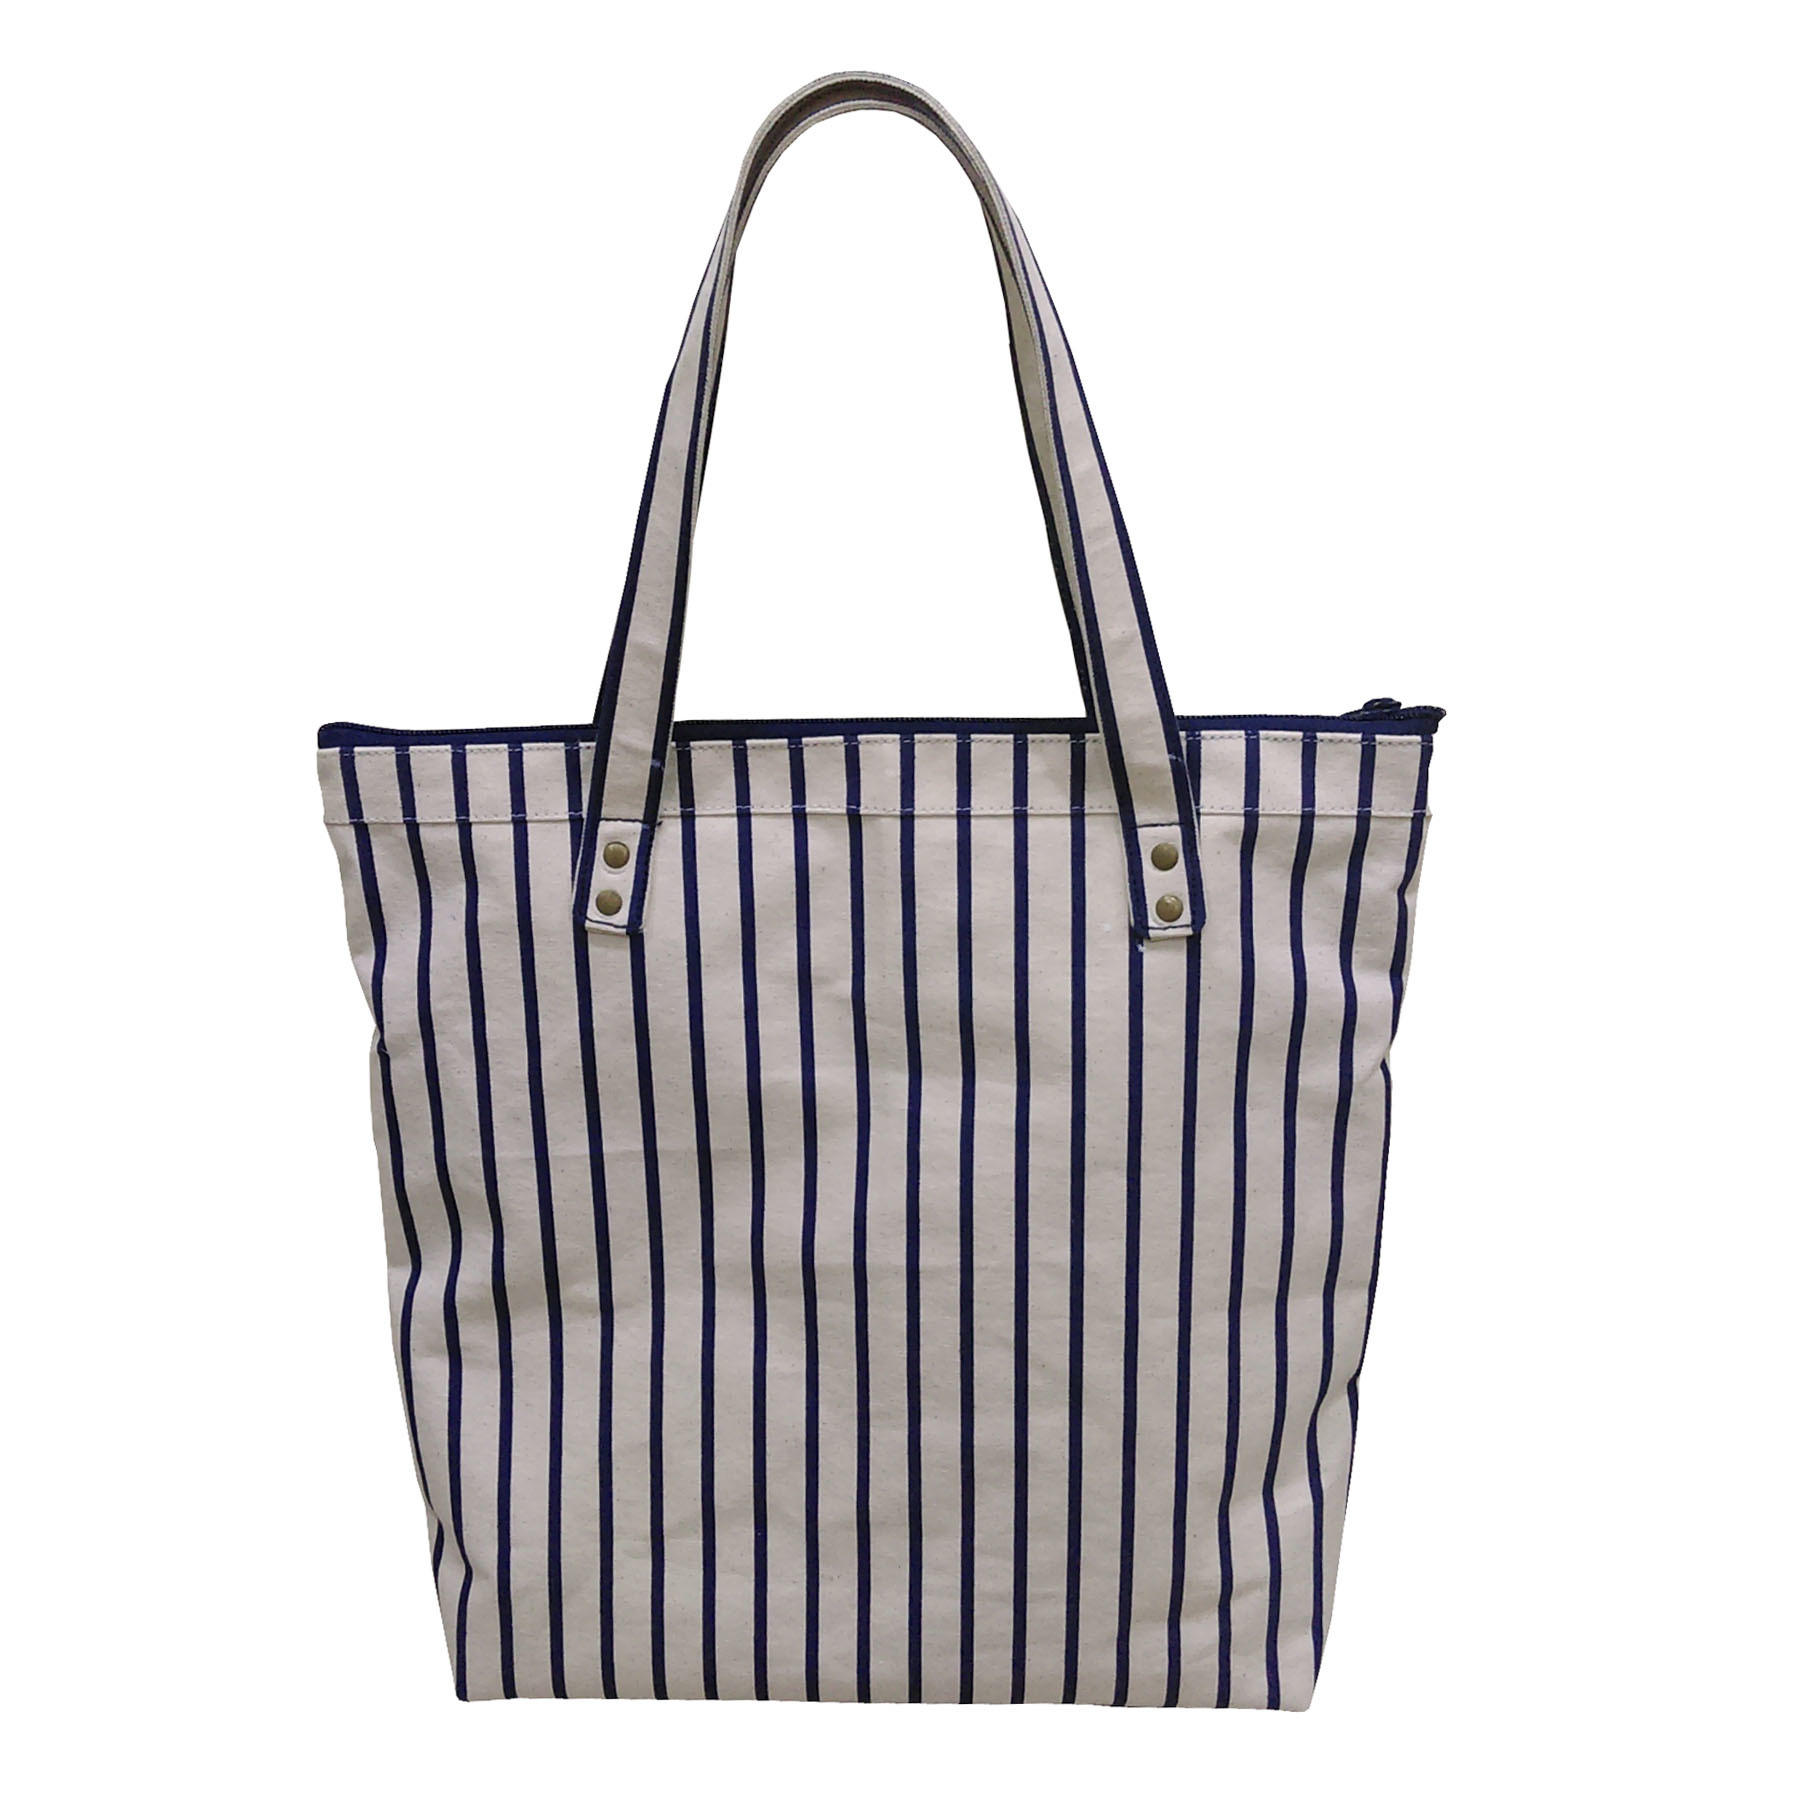 12 Oz Natural Canvas Tote Bag With Inside Polyester Lining & Canvas Handle